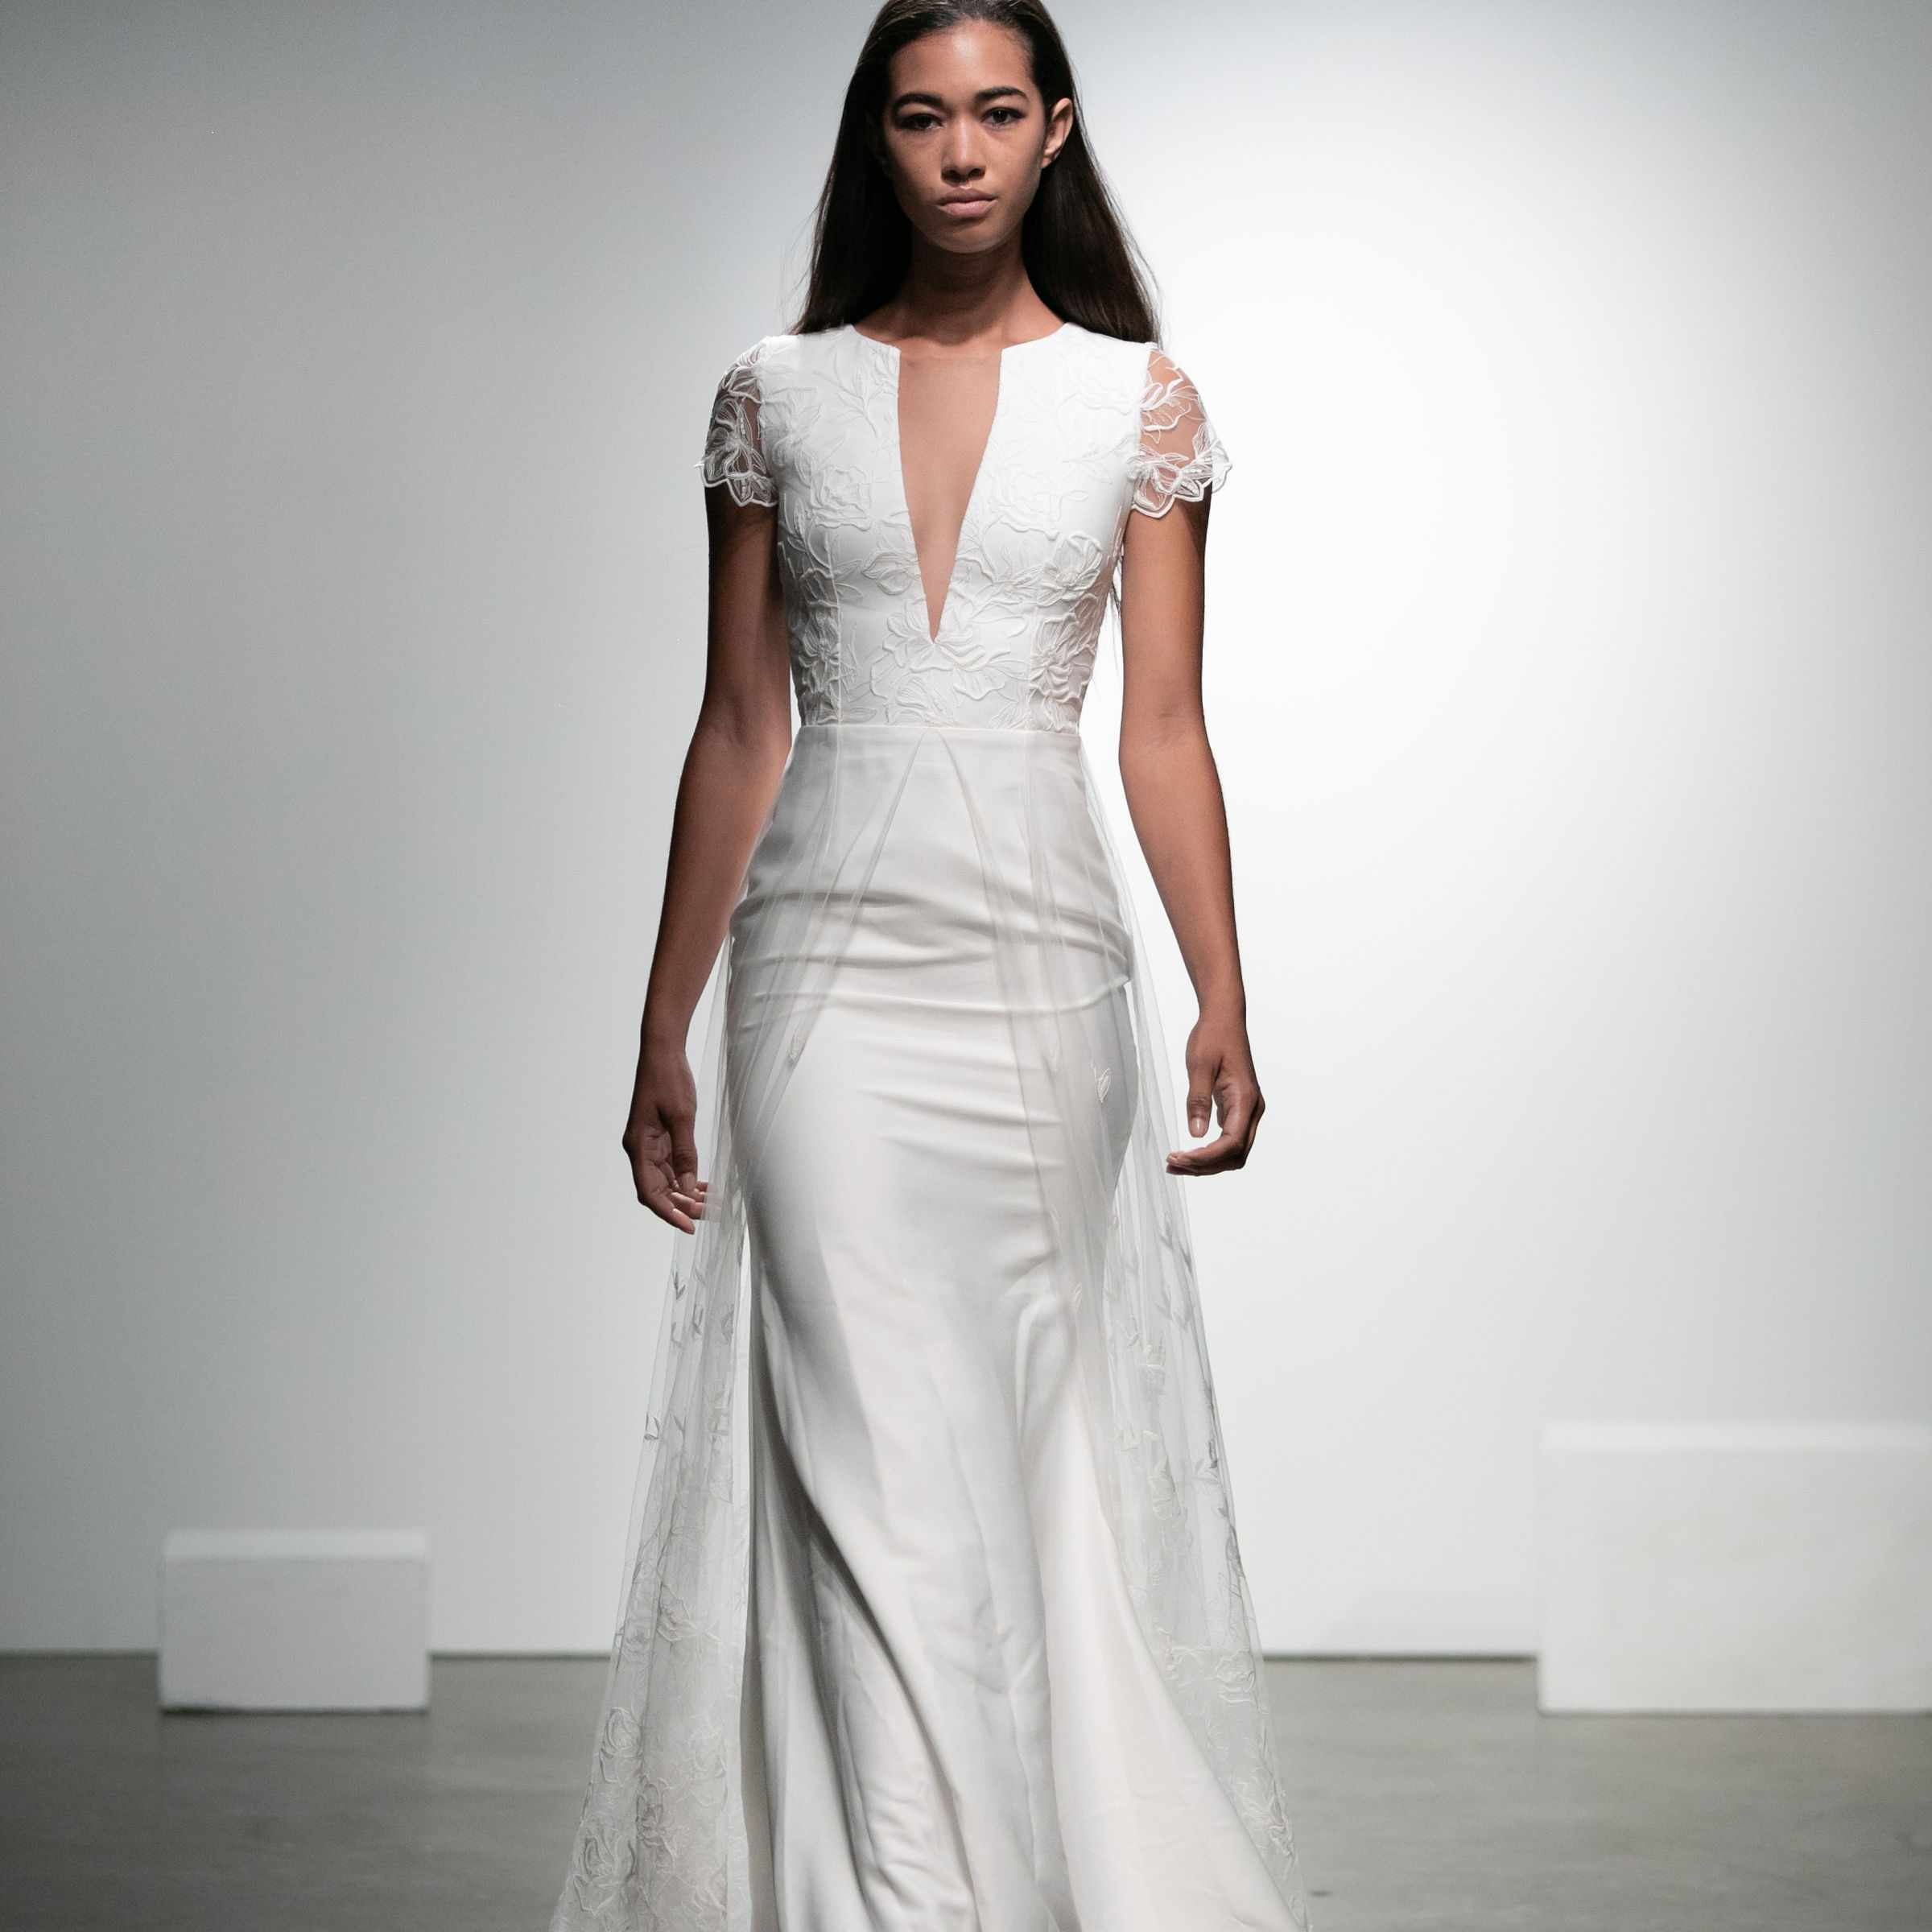 V-neck wedding gown with cap sleeves, plunging illusion neckline, and embroidered tulle overskirt